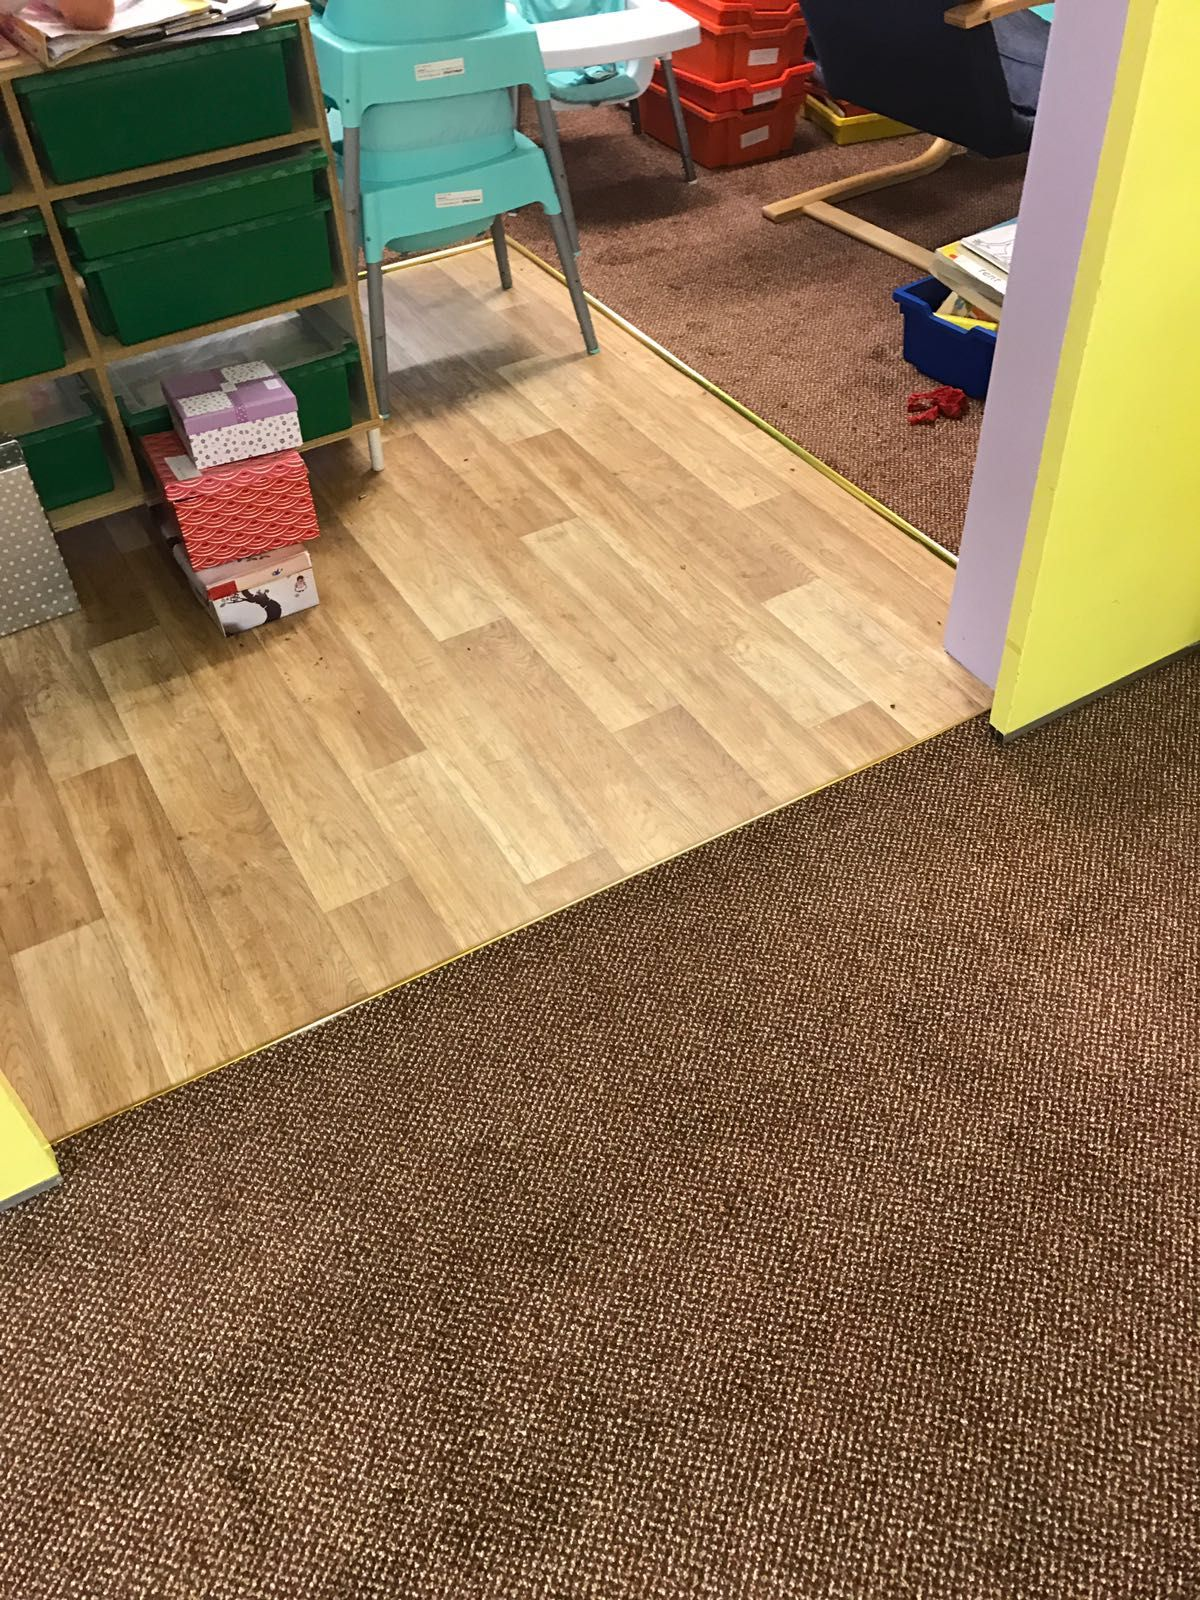 Durable contract grade floorings in both Vinyl and Carpet